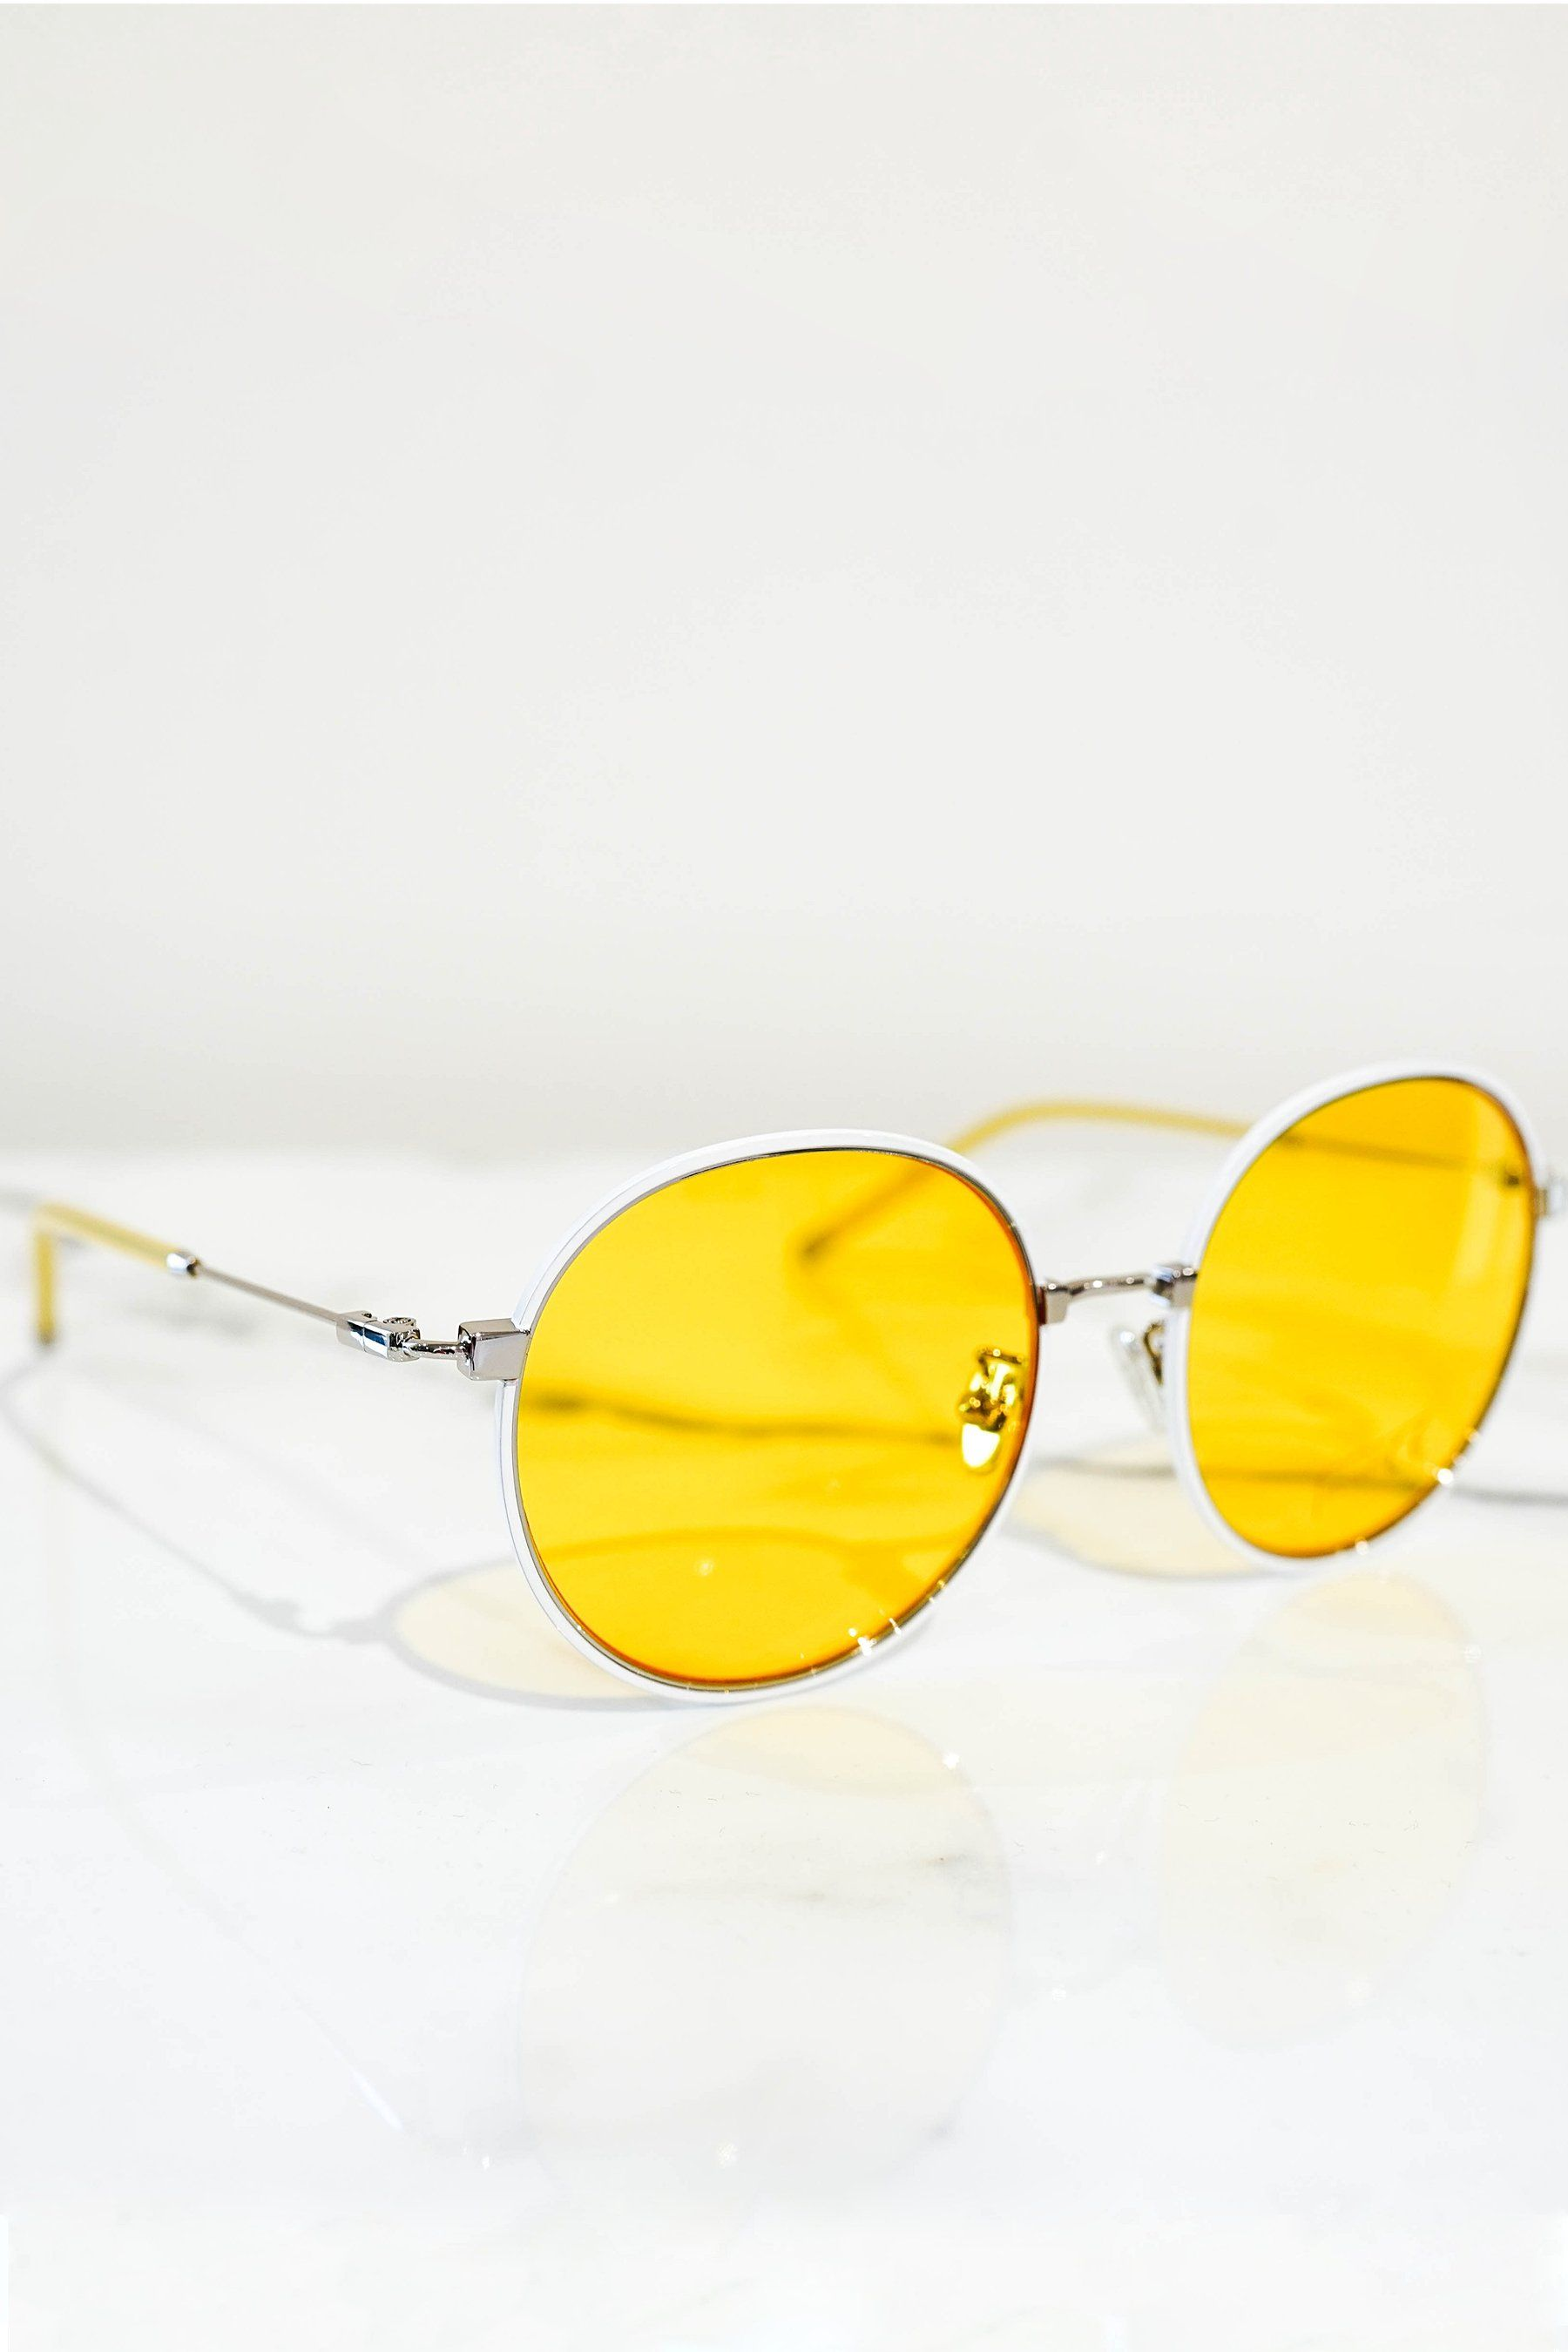 Round sunglasses white with yellow lens - PEGADOR - Dominate the Hype